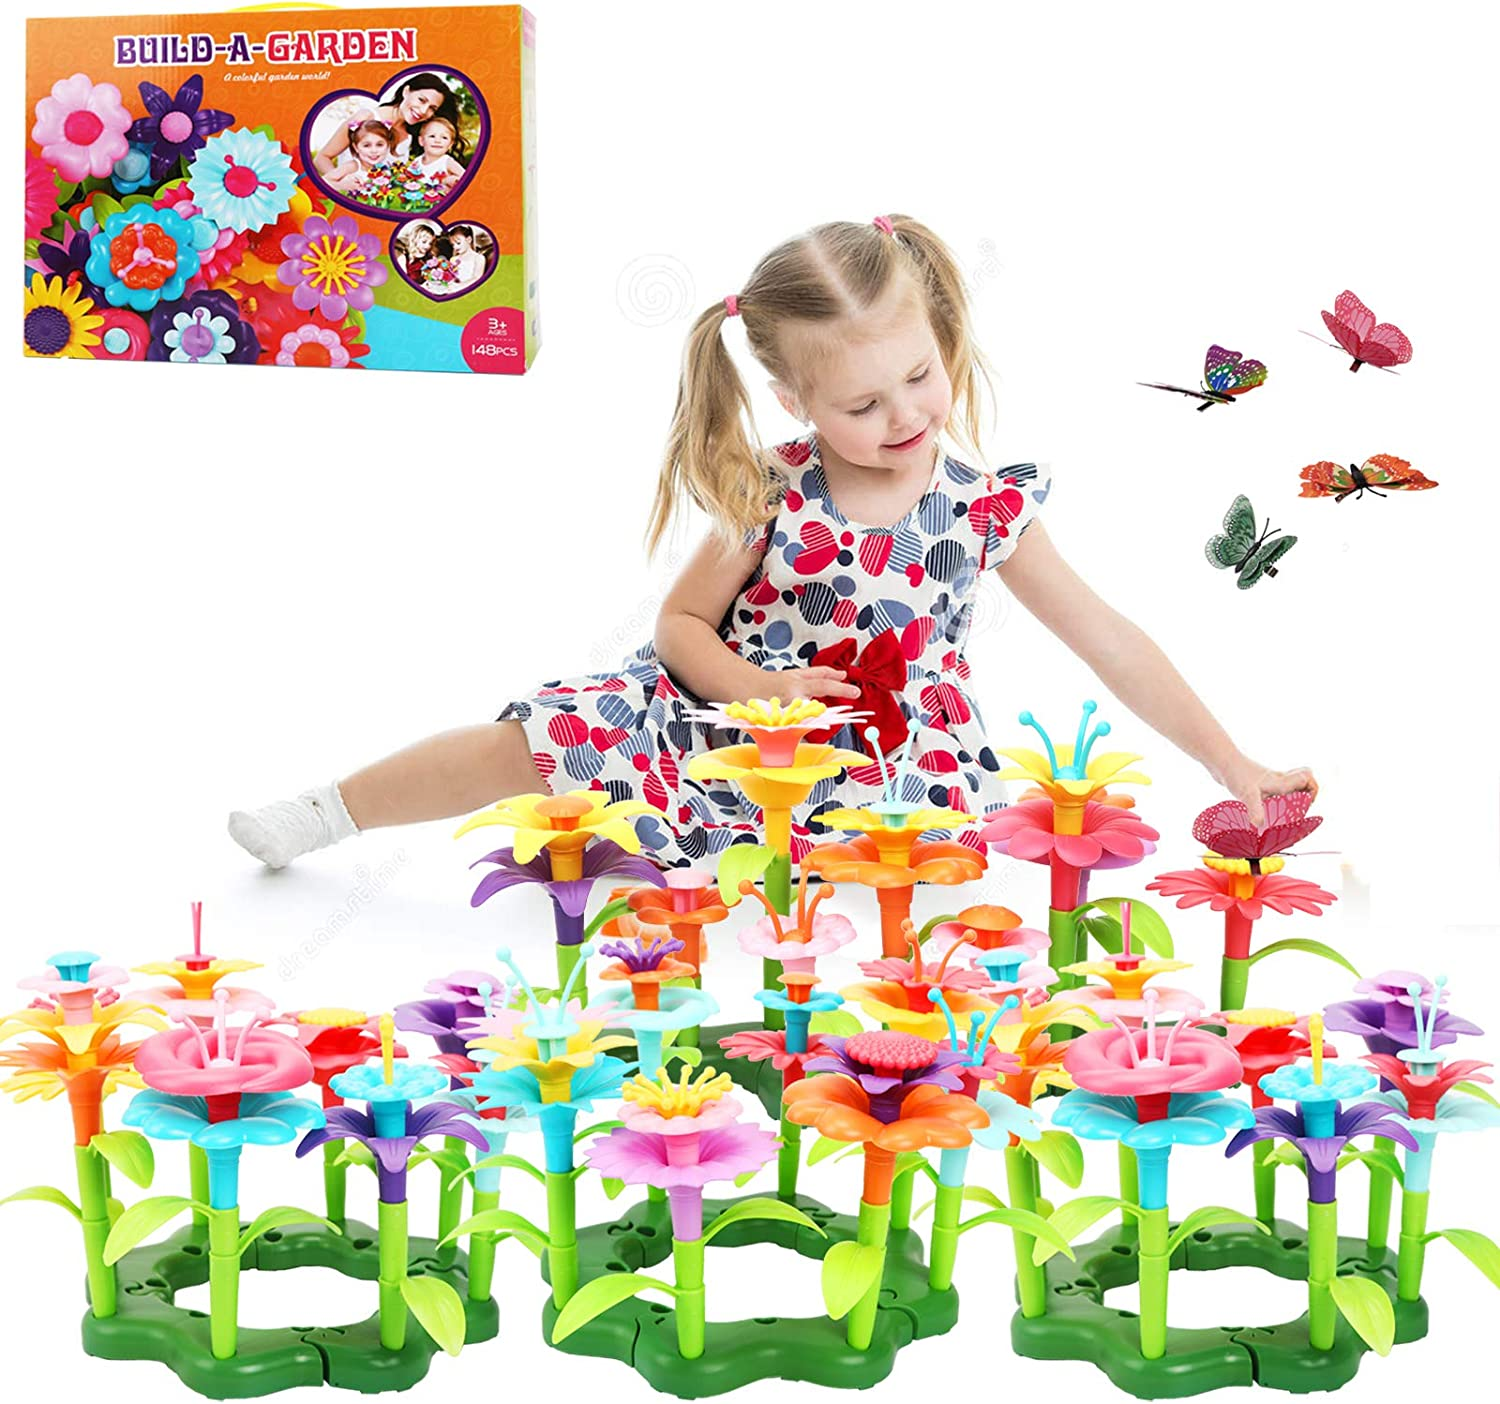 Jogotoll Flower Garden Building Toys Build a Bouquet STEM Educational Toy Boys Girls Birthday Gifts for 3 4 5 6 7 Year Old , 148PCS Flower Set and 12PCS Simulation Butterfly Included